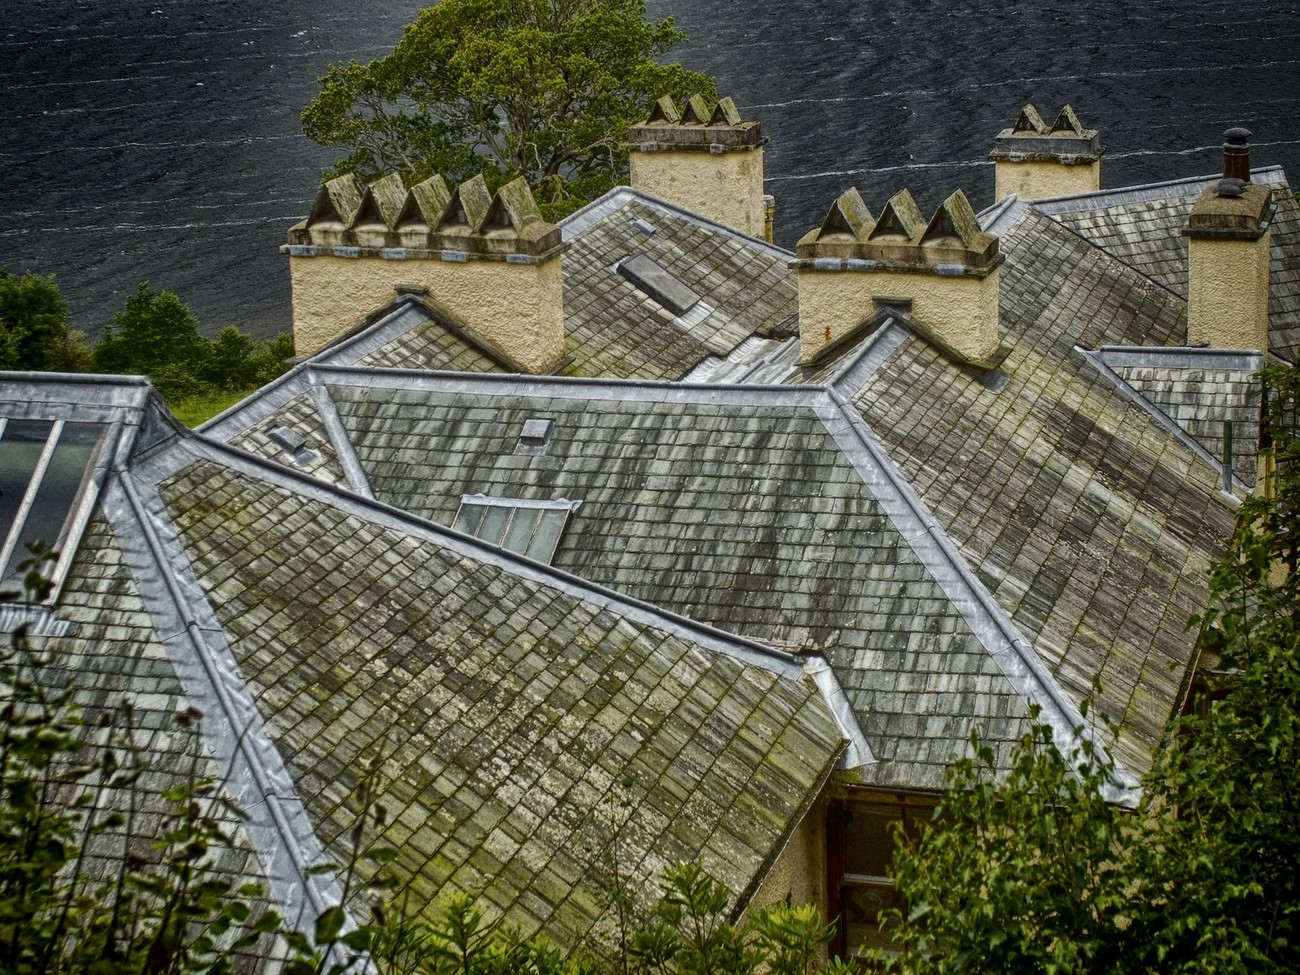 The rooftop of Brantwood, Coniston (UK Lake District) where John Ruskin, the renowned Victorian poet, artist and philosopher lived and worked. In 1871 Ruskin bought Brantwood and retired there in 1884. He was buried in Coniston's churchyard in 1900.